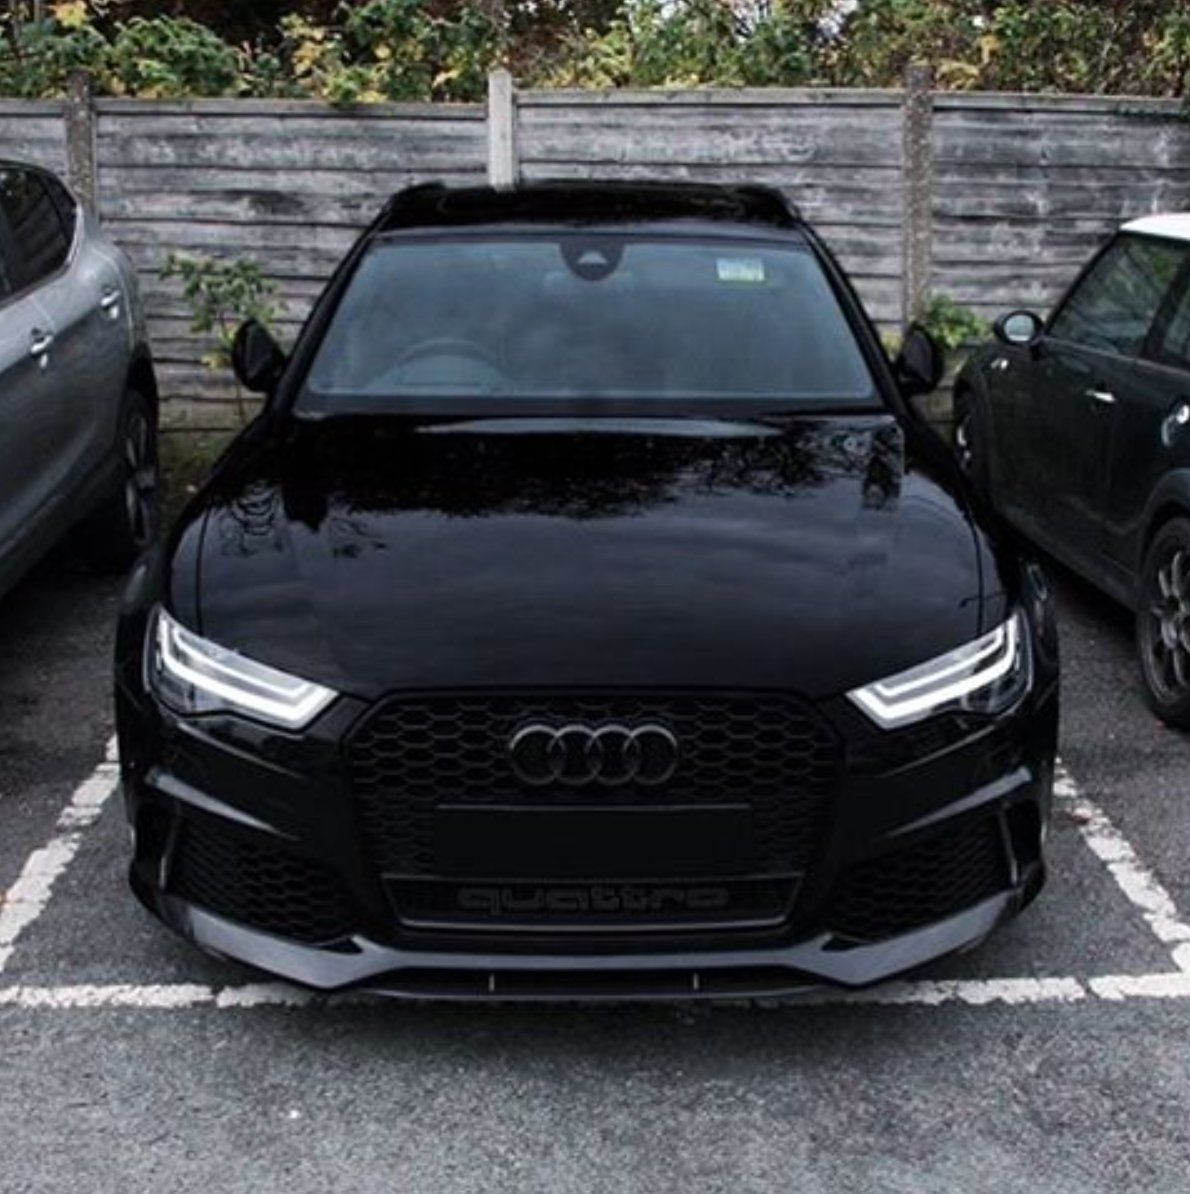 Blacked out Audi RS6   Rate this if you like that! #car #cars #automotive #luxury <br>http://pic.twitter.com/SH1FpGyEjG